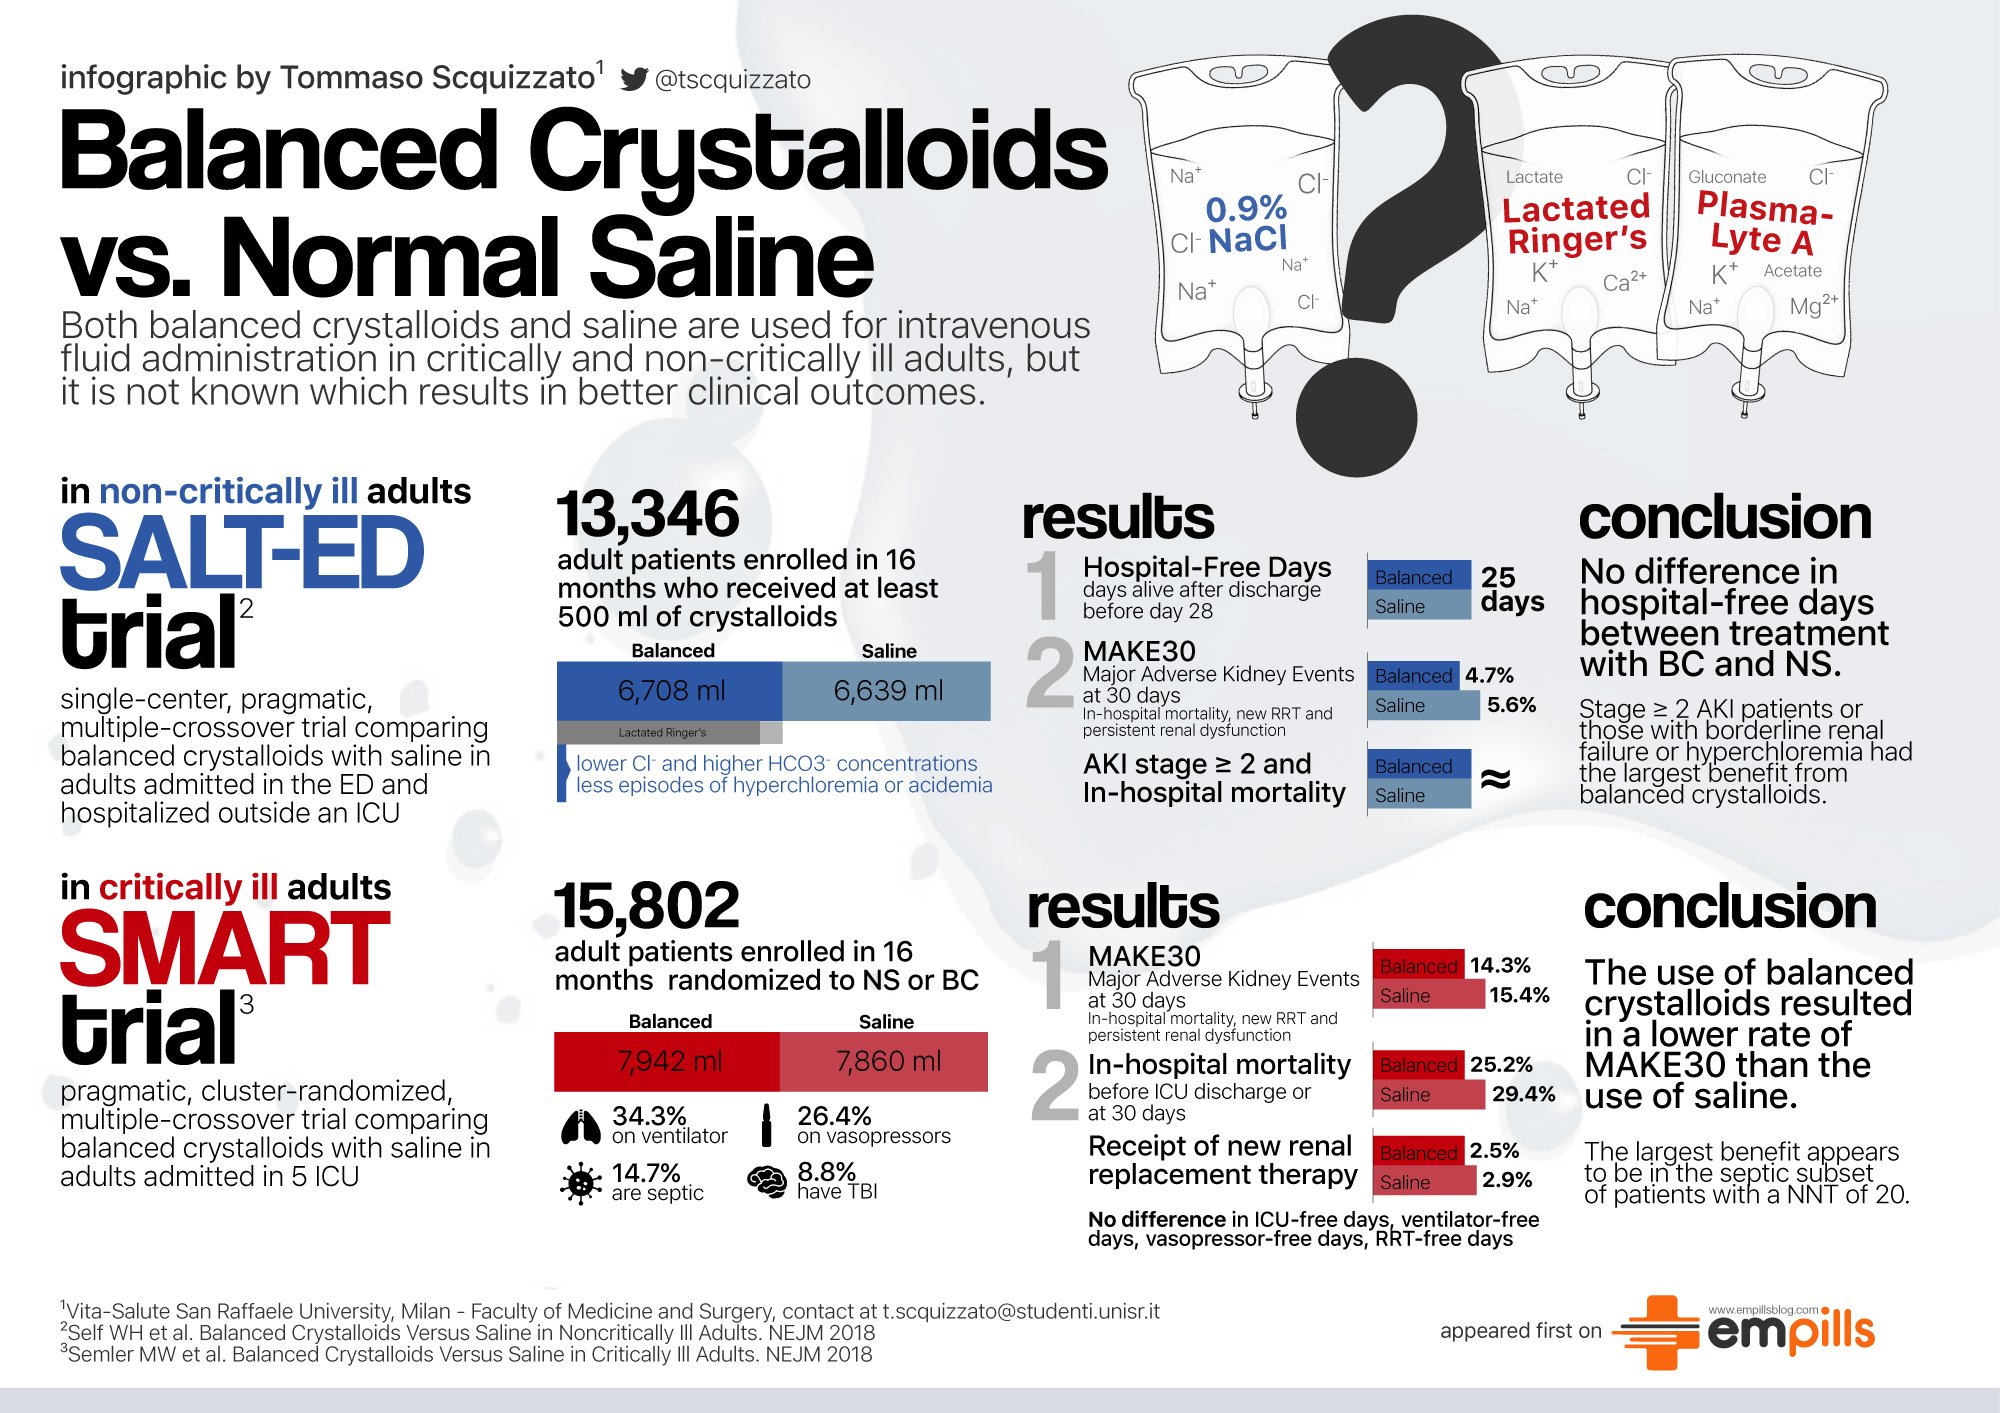 Balanced Crystalloids Vs Normalsaline My Infographic About Salt Ed And Smart Trial